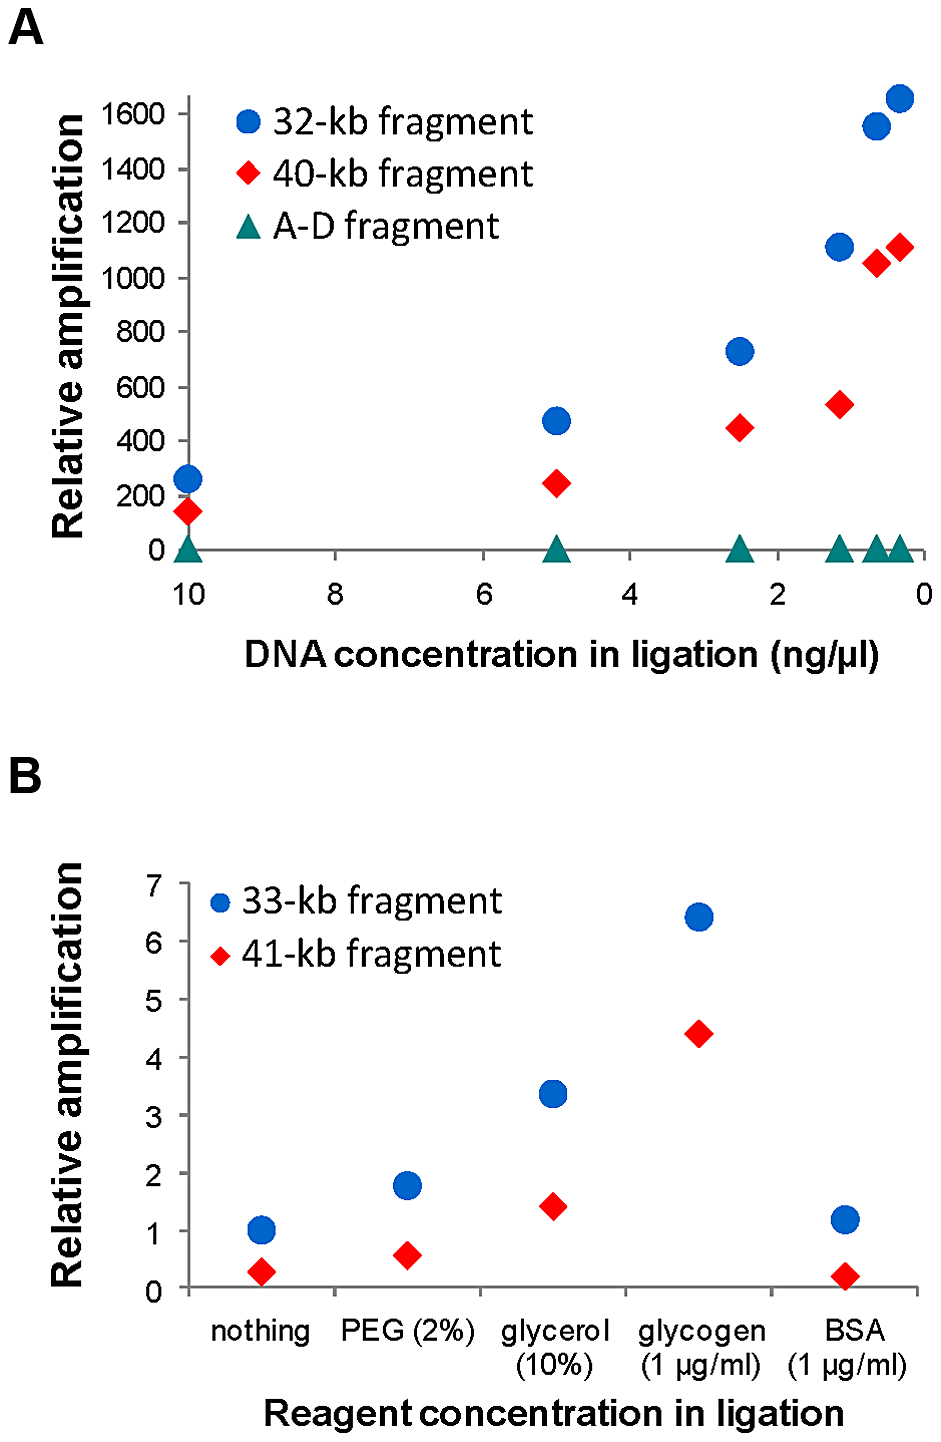 Quantification of self-ligation efficiency in iPCR with different DNA dilutions and different reagents.